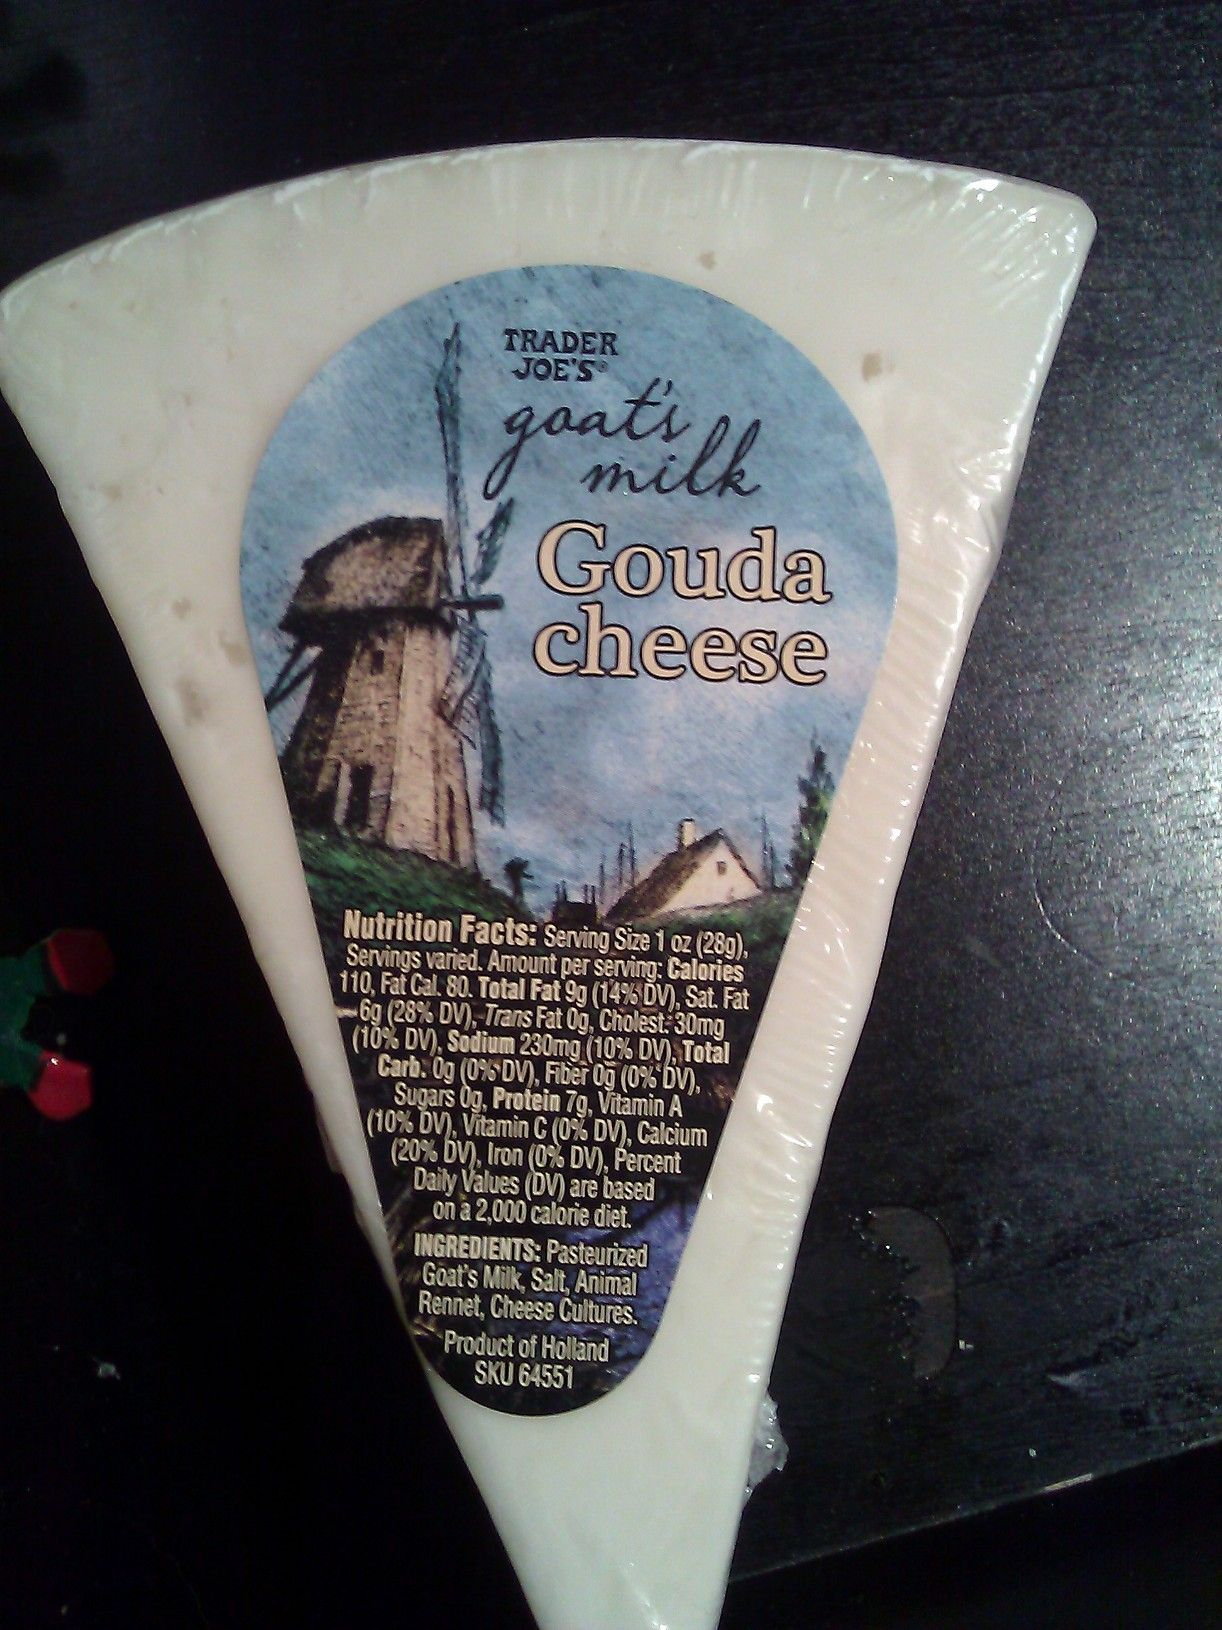 This cheese.....deserves to be president. Really.